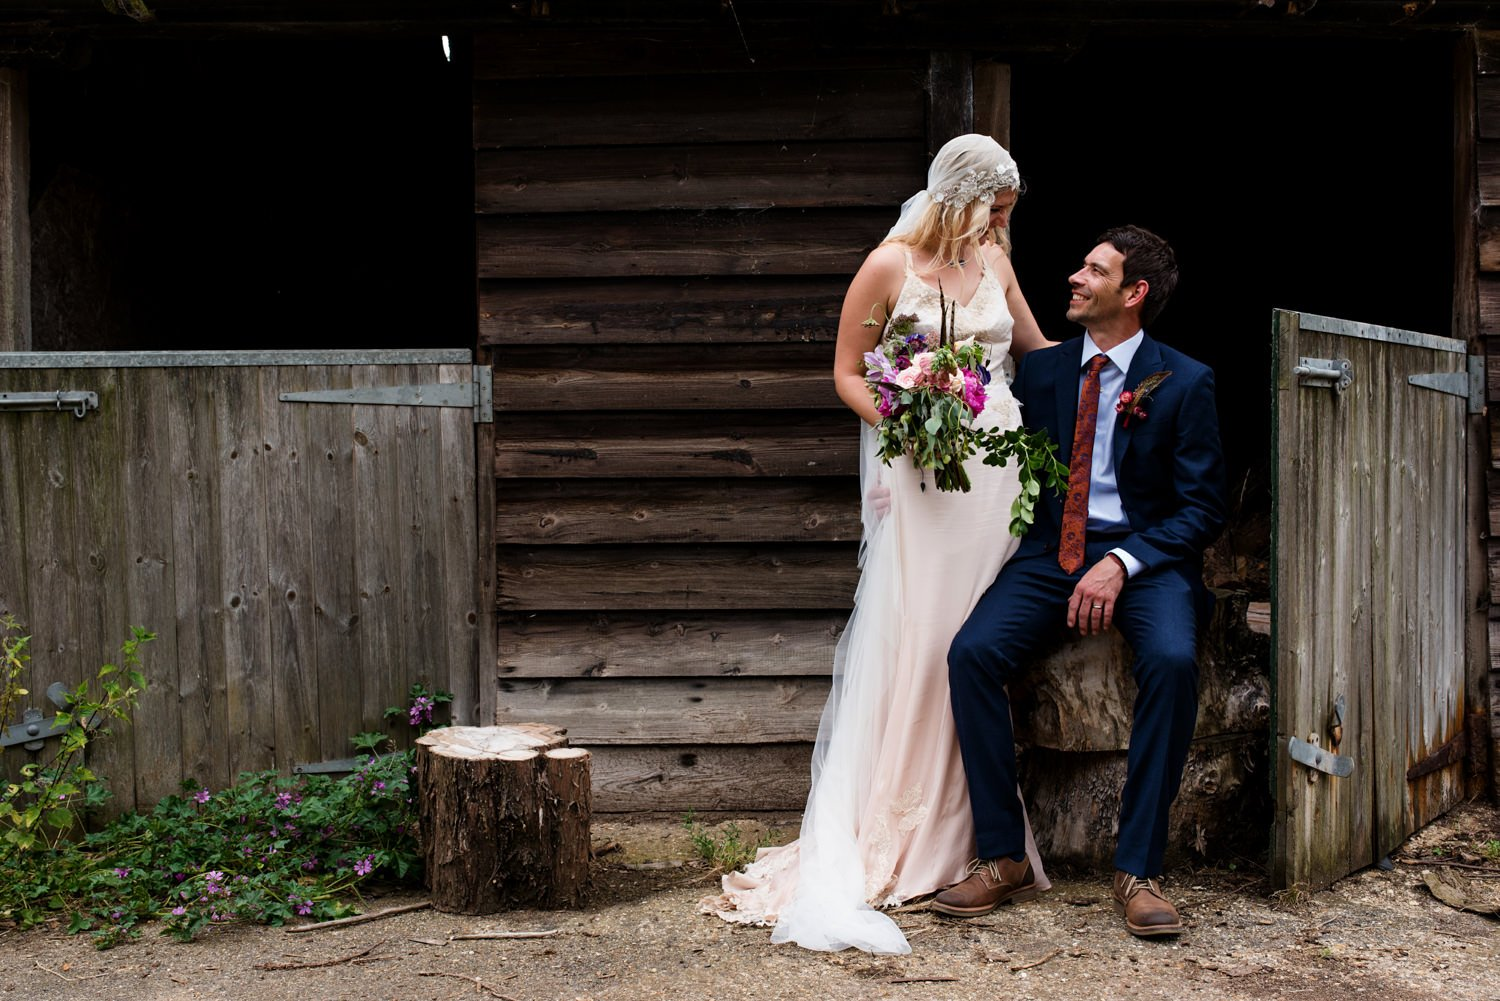 chittering-farm-wedding-photographer-cambridge-84